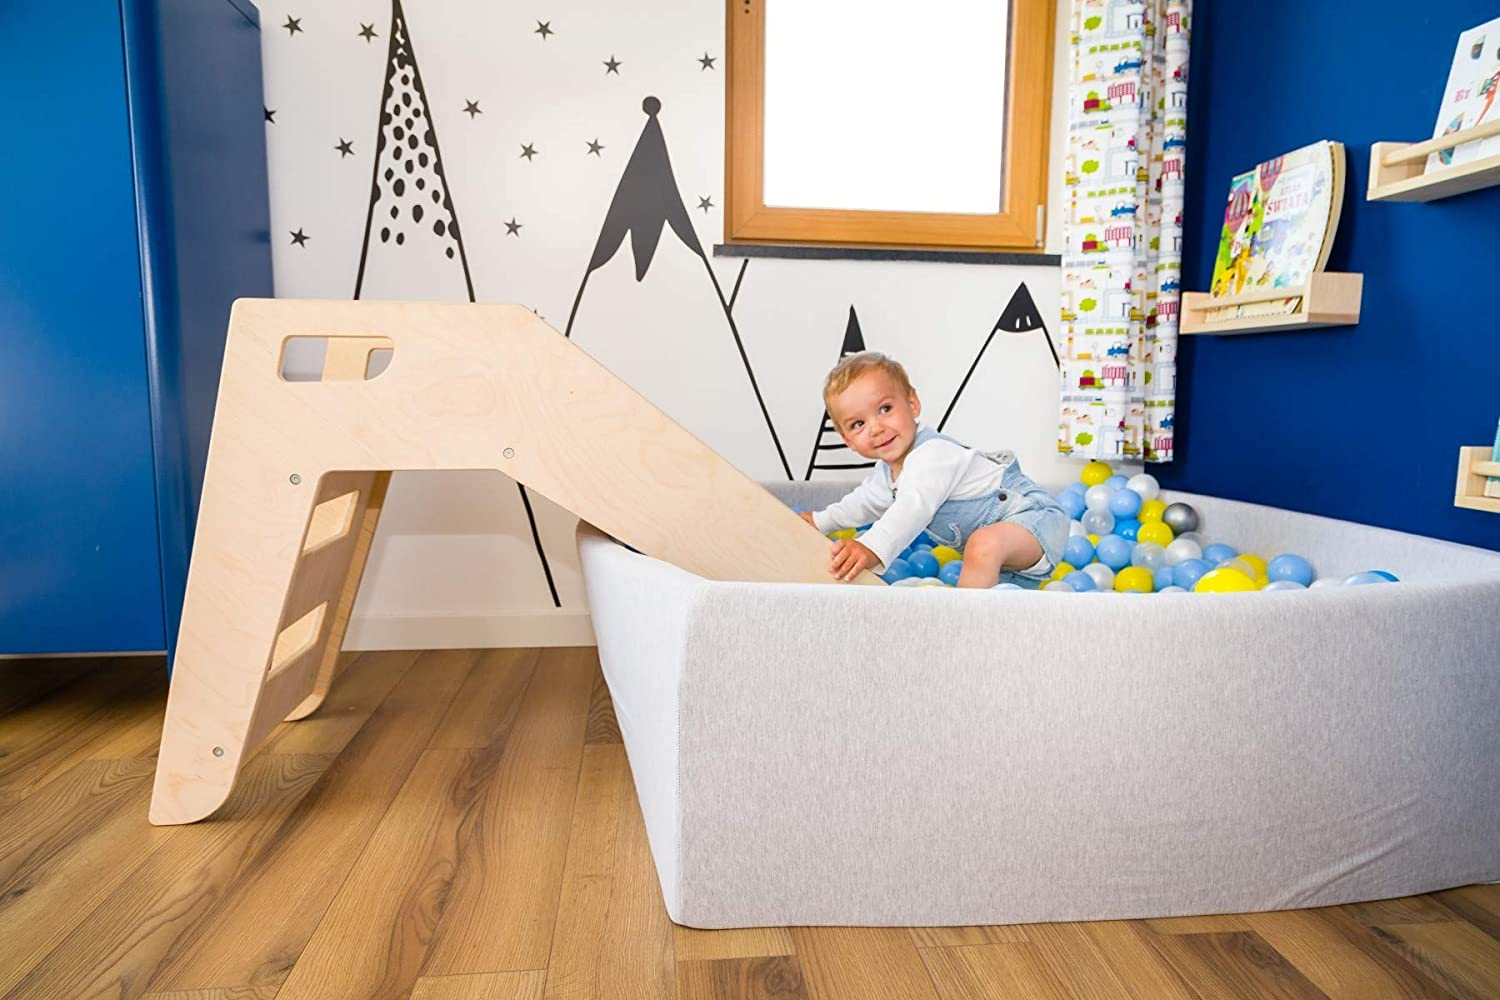 Colour: Natural Modern Scandinavian Style Wooden Slide Great with Ball Pit Outdoor Indoor